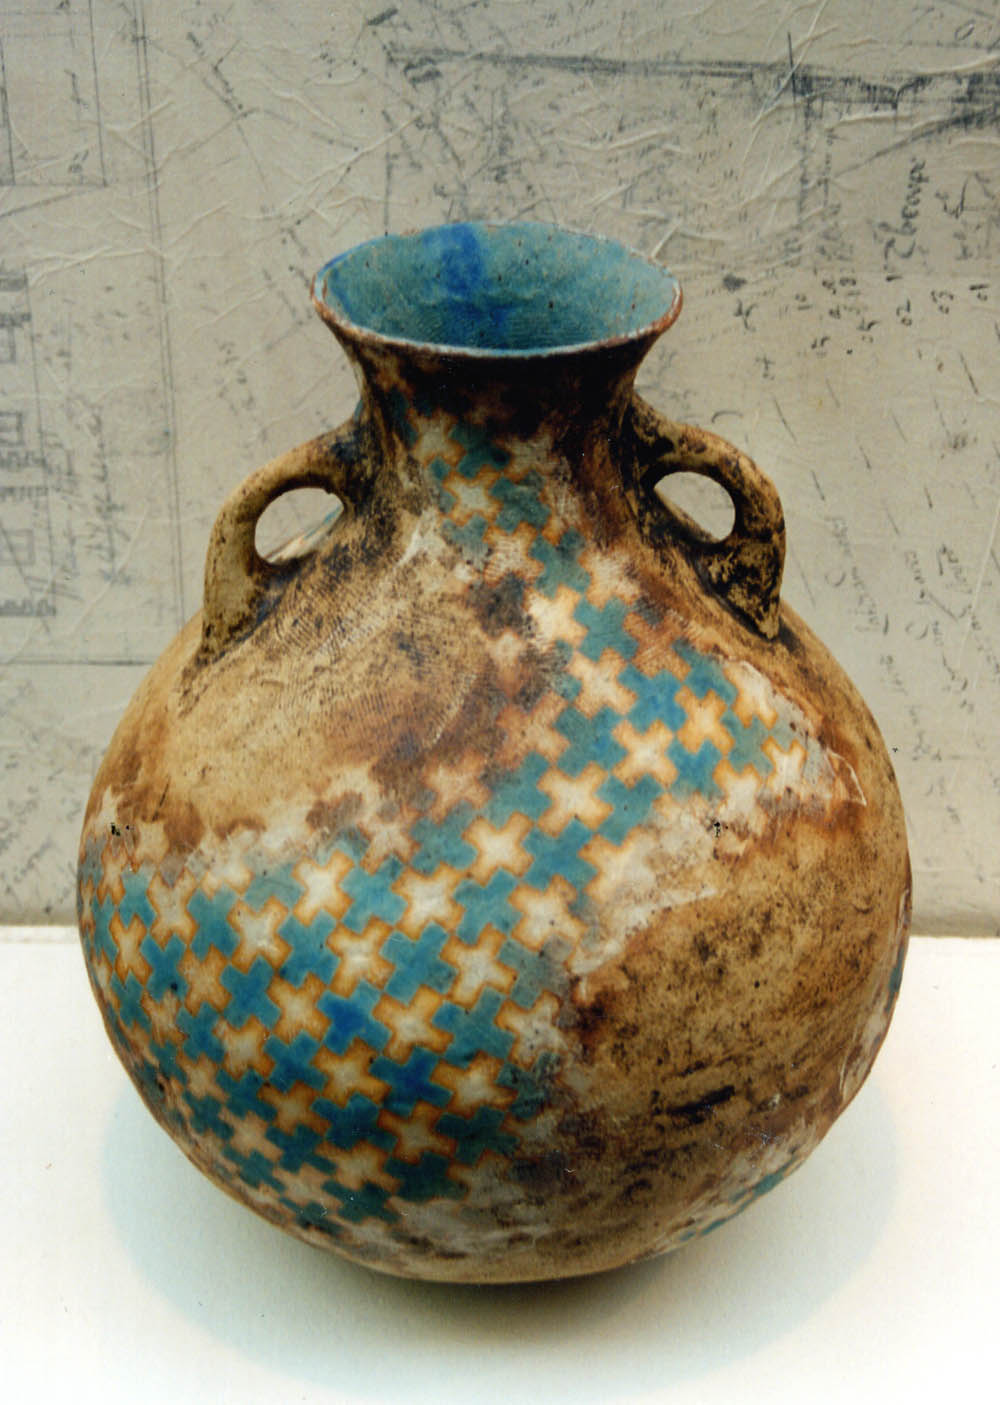 02-web-old-coil-pot.jpg